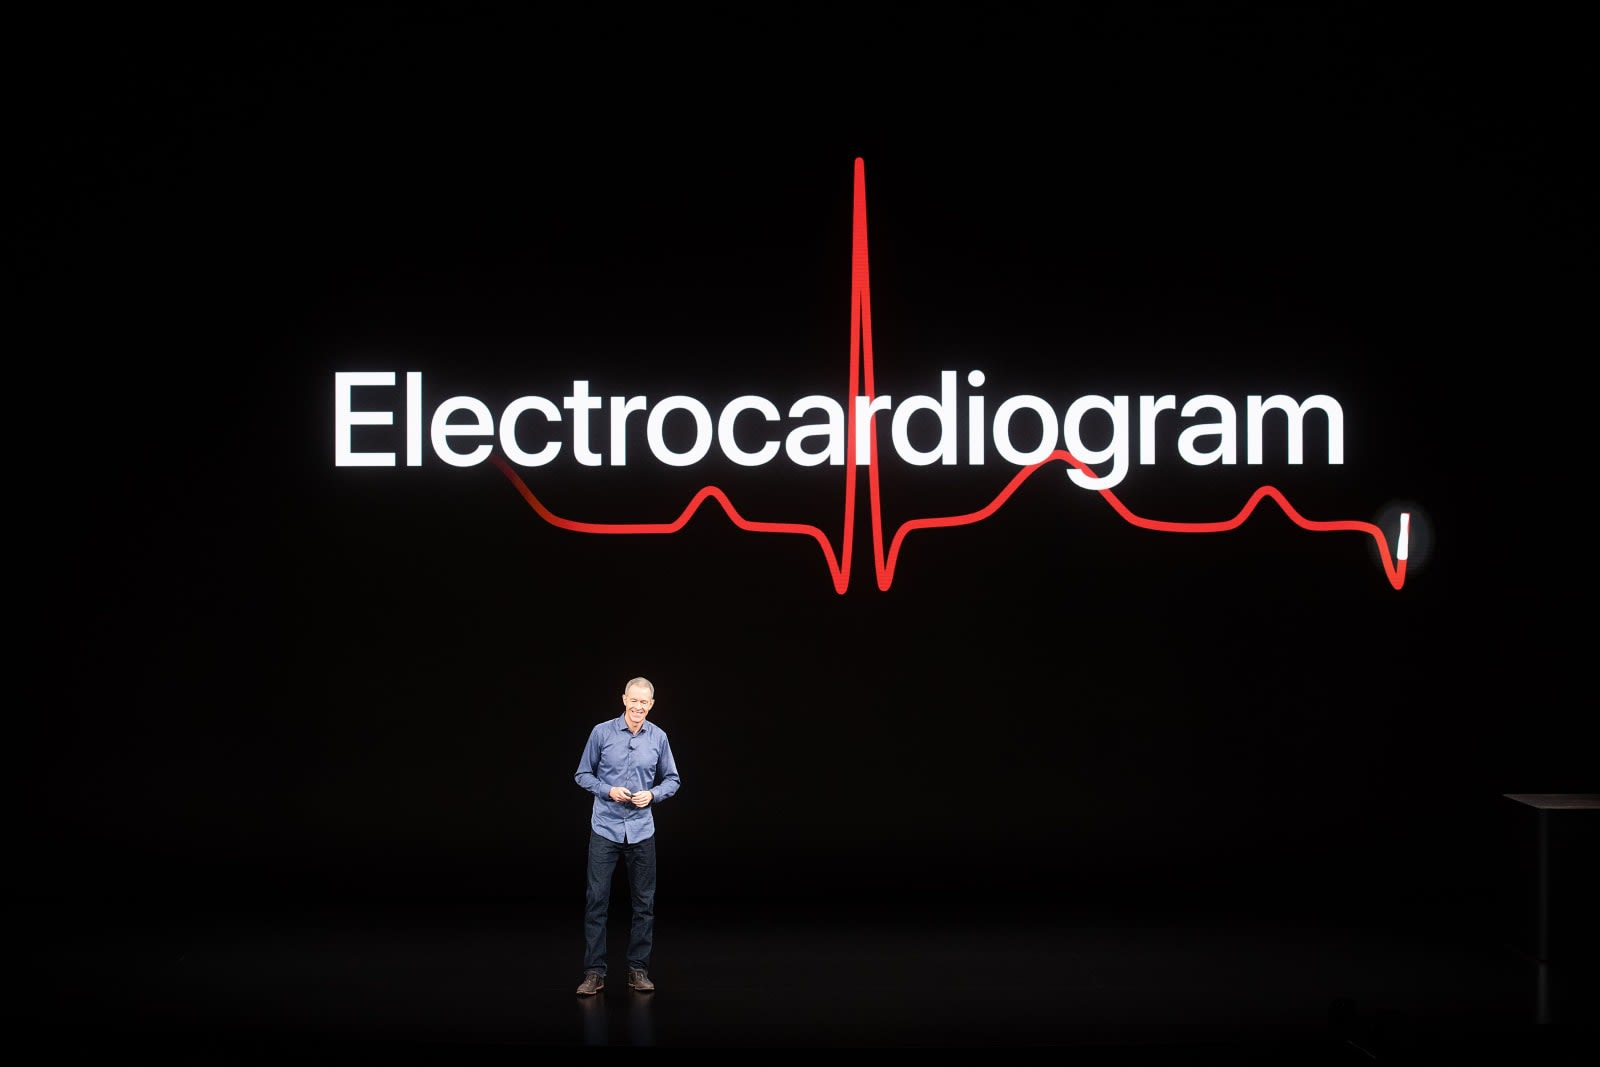 The surprising story behind the Apple Watch's ECG ability